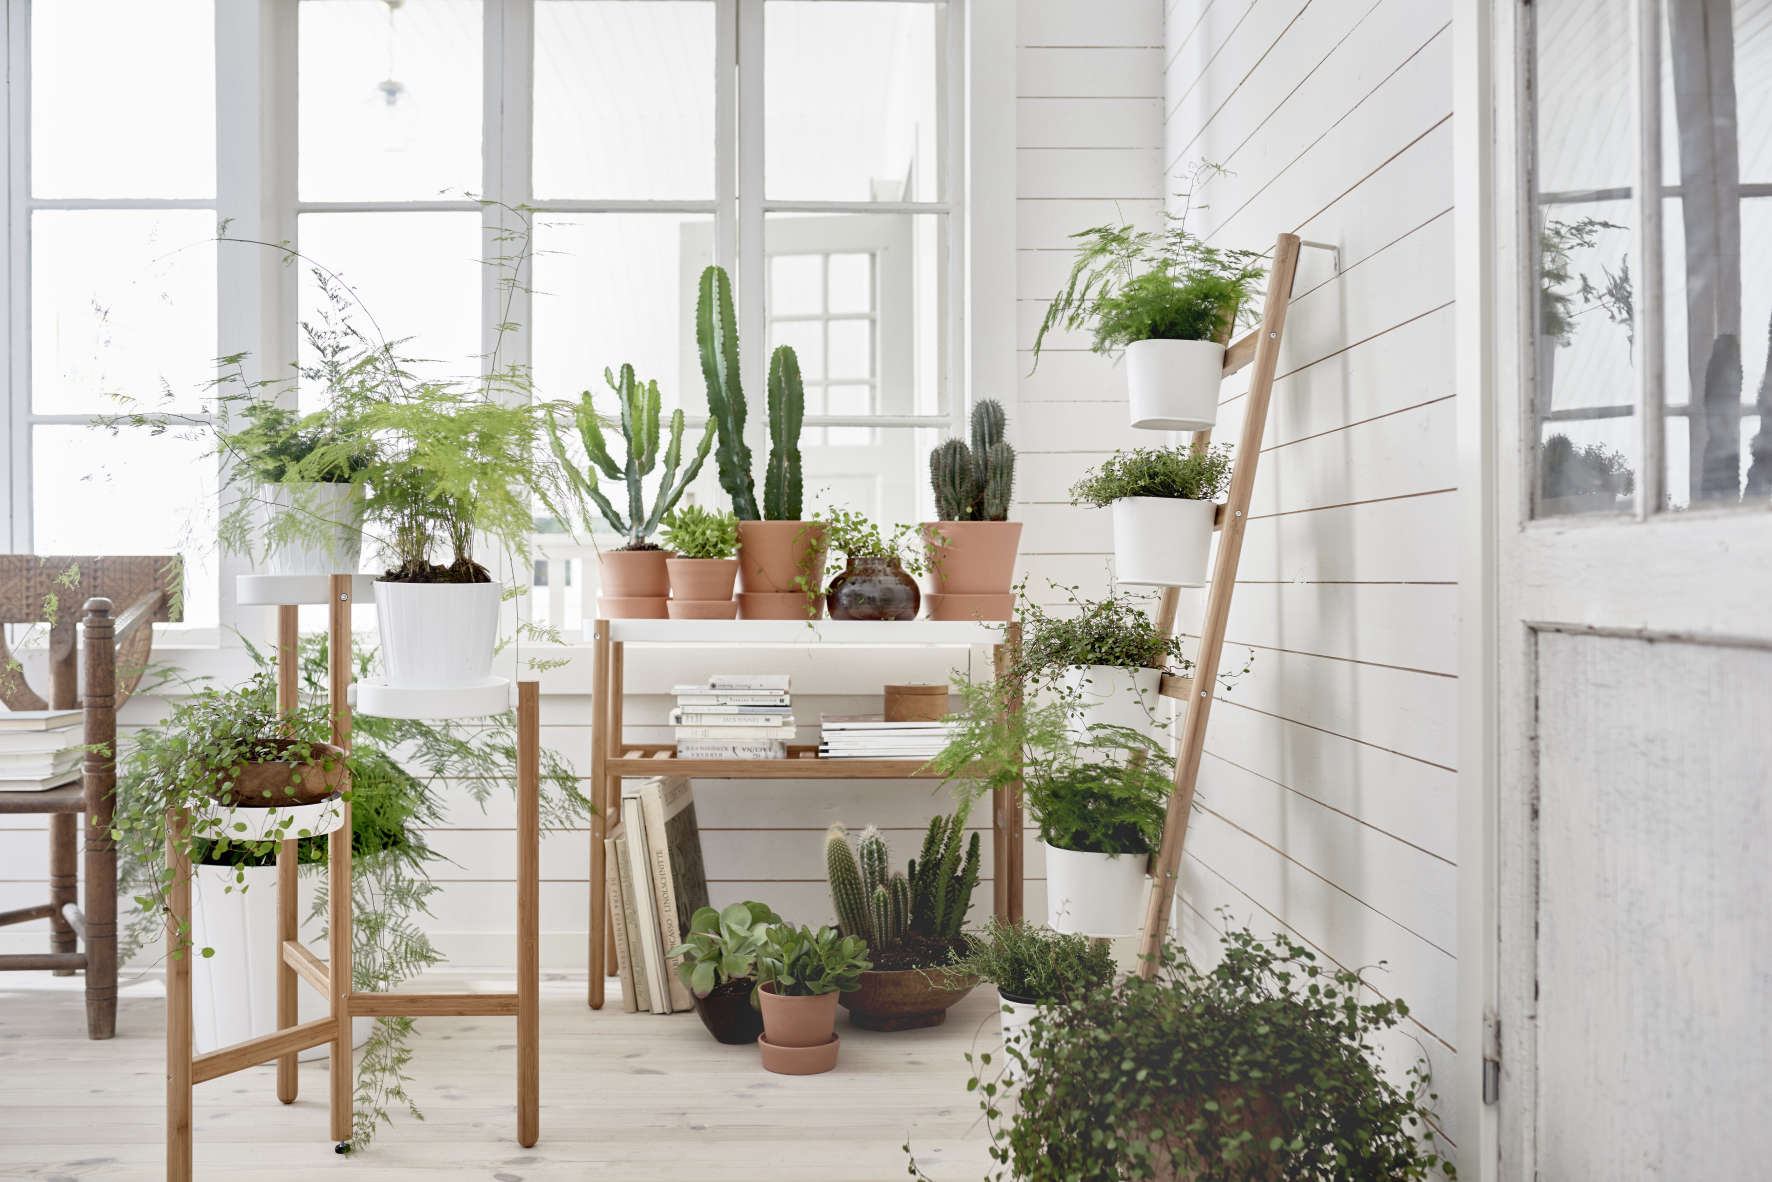 Ikea Sneak Peek: New Bamboo Plant Stands And Planters